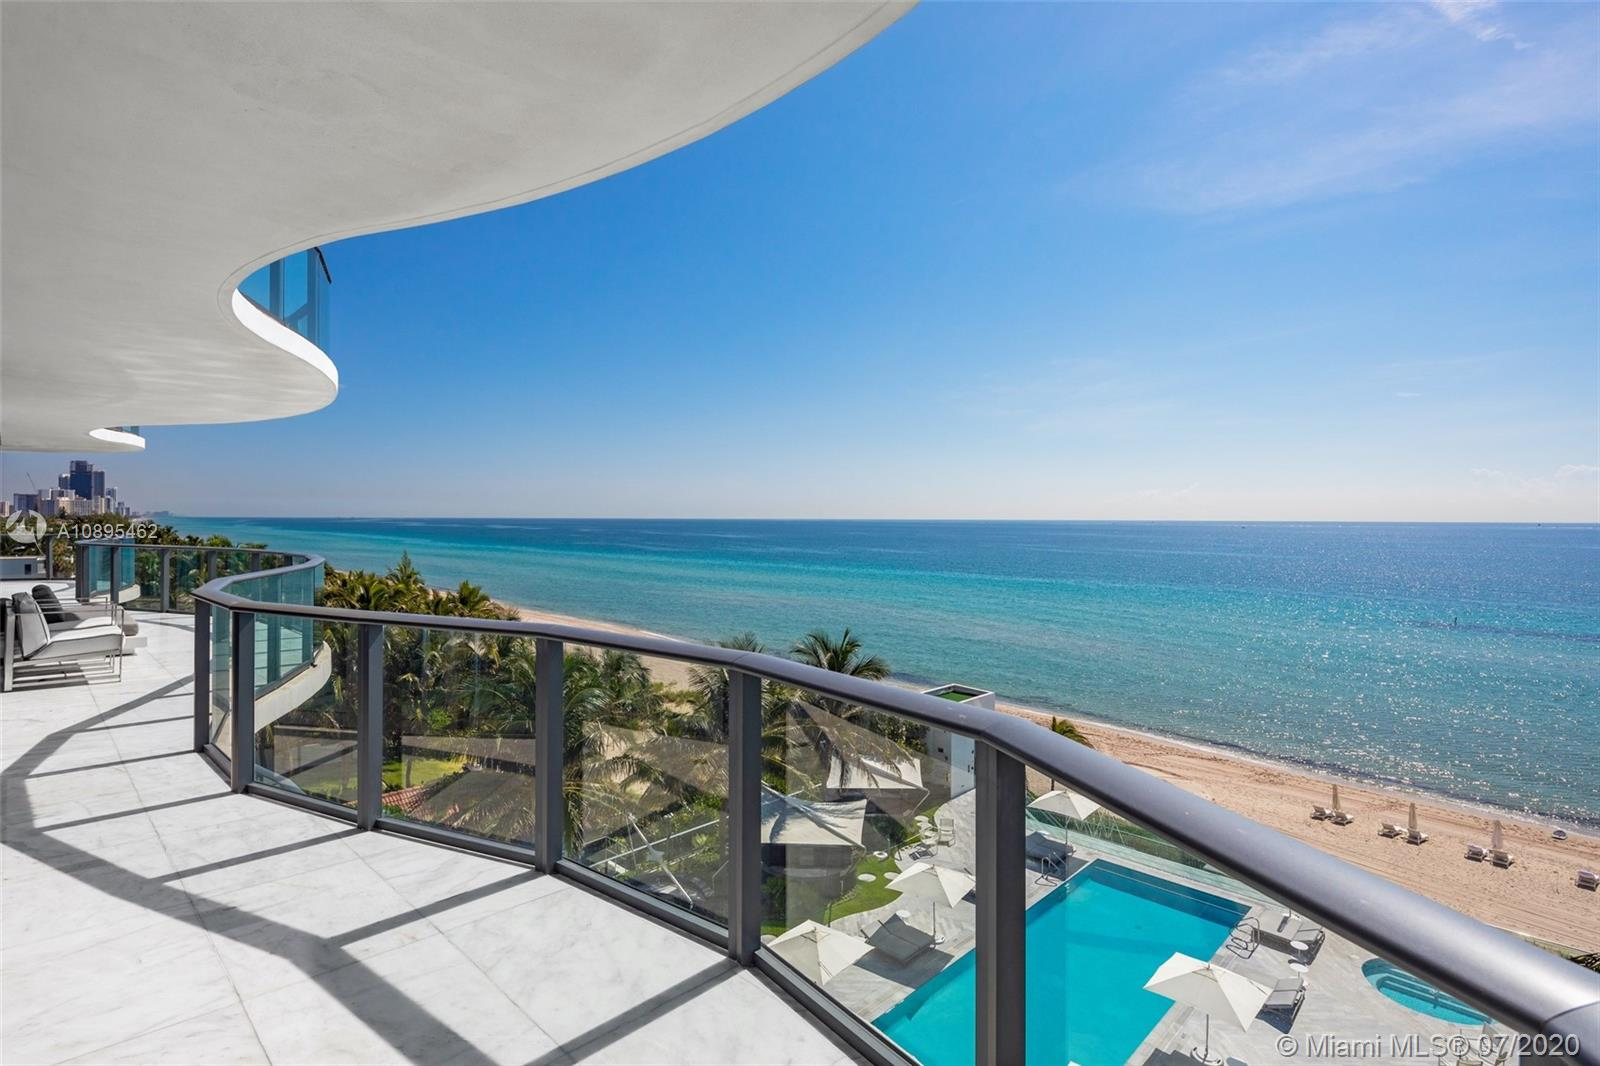 19575 Collins Ave, Unit #6 Luxury Real Estate